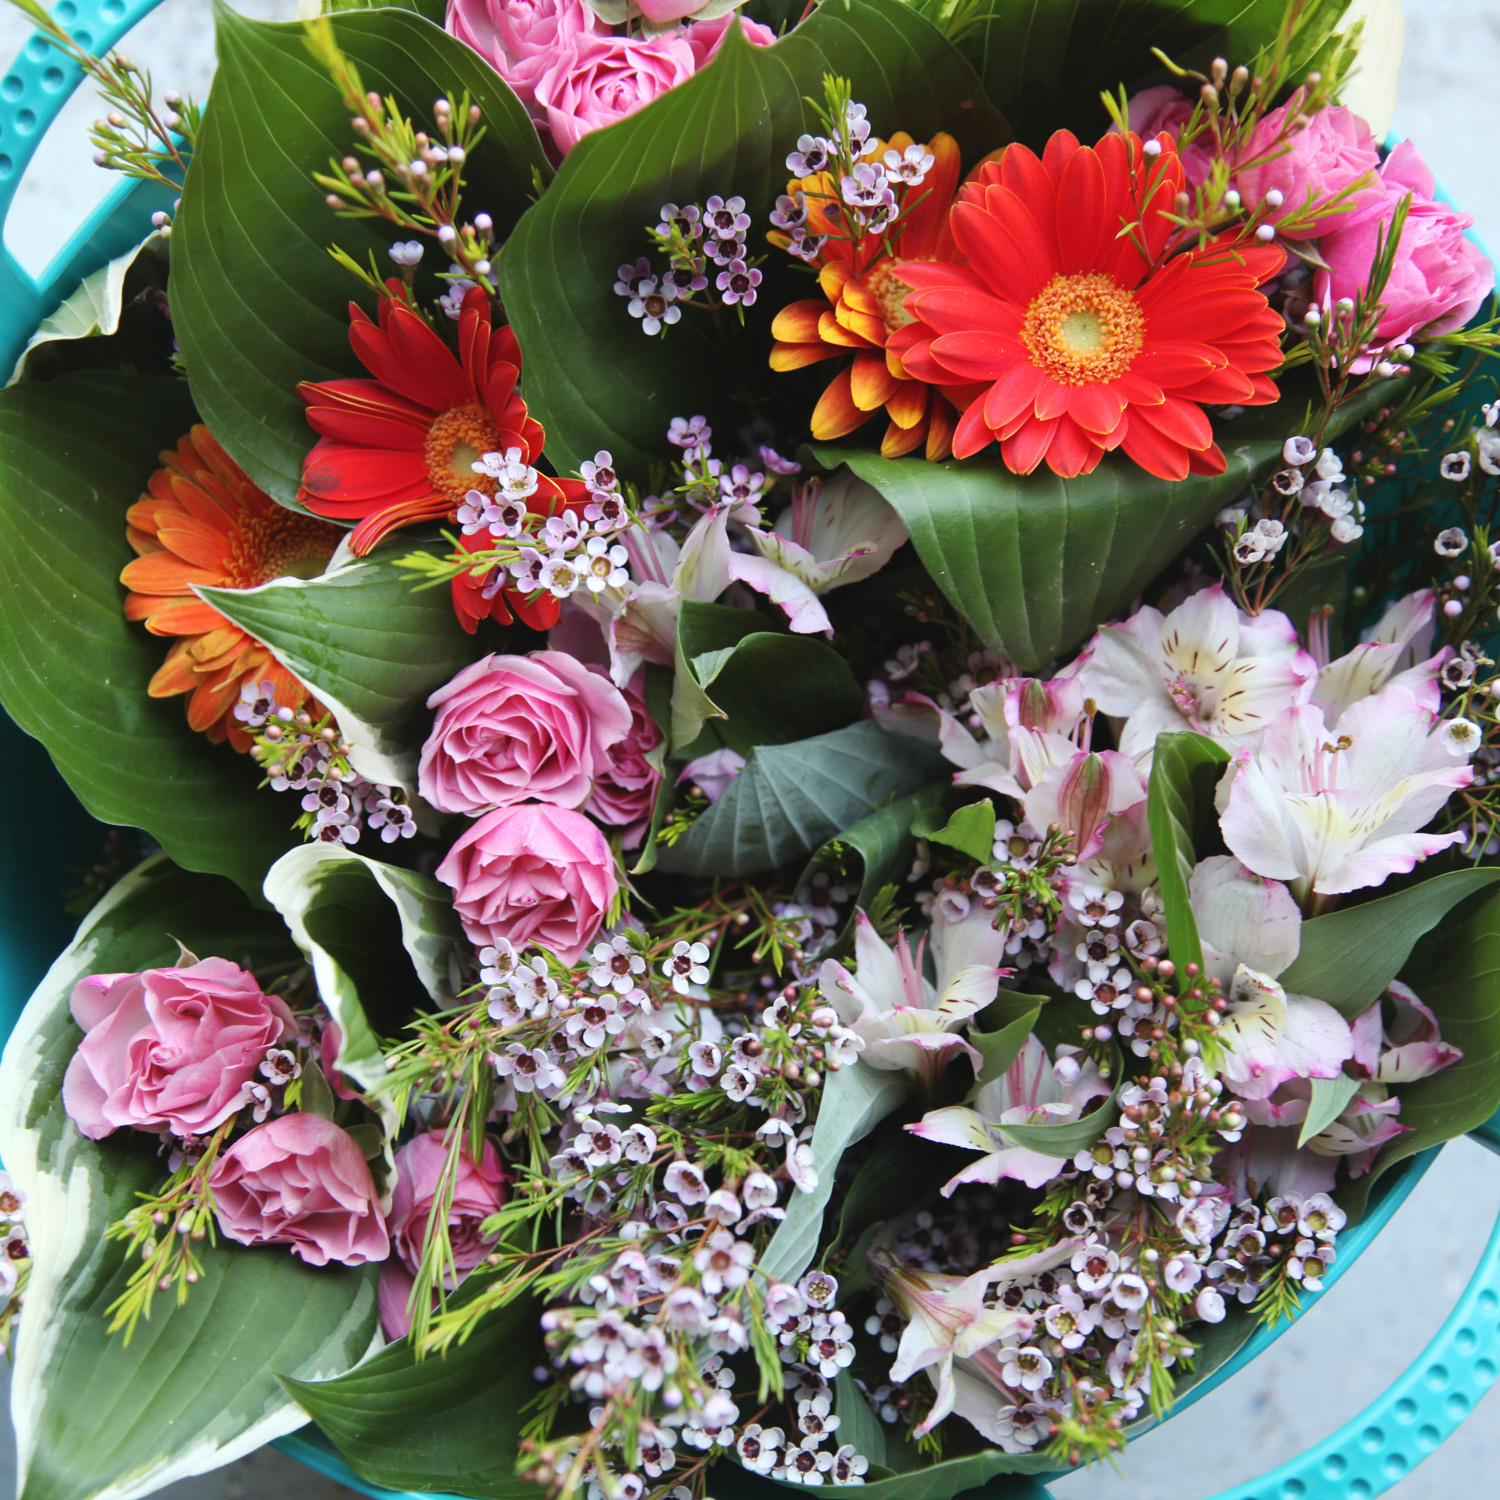 Small flower bouquets for teacher appreciation week stately kitsch completed bouquets izmirmasajfo Gallery